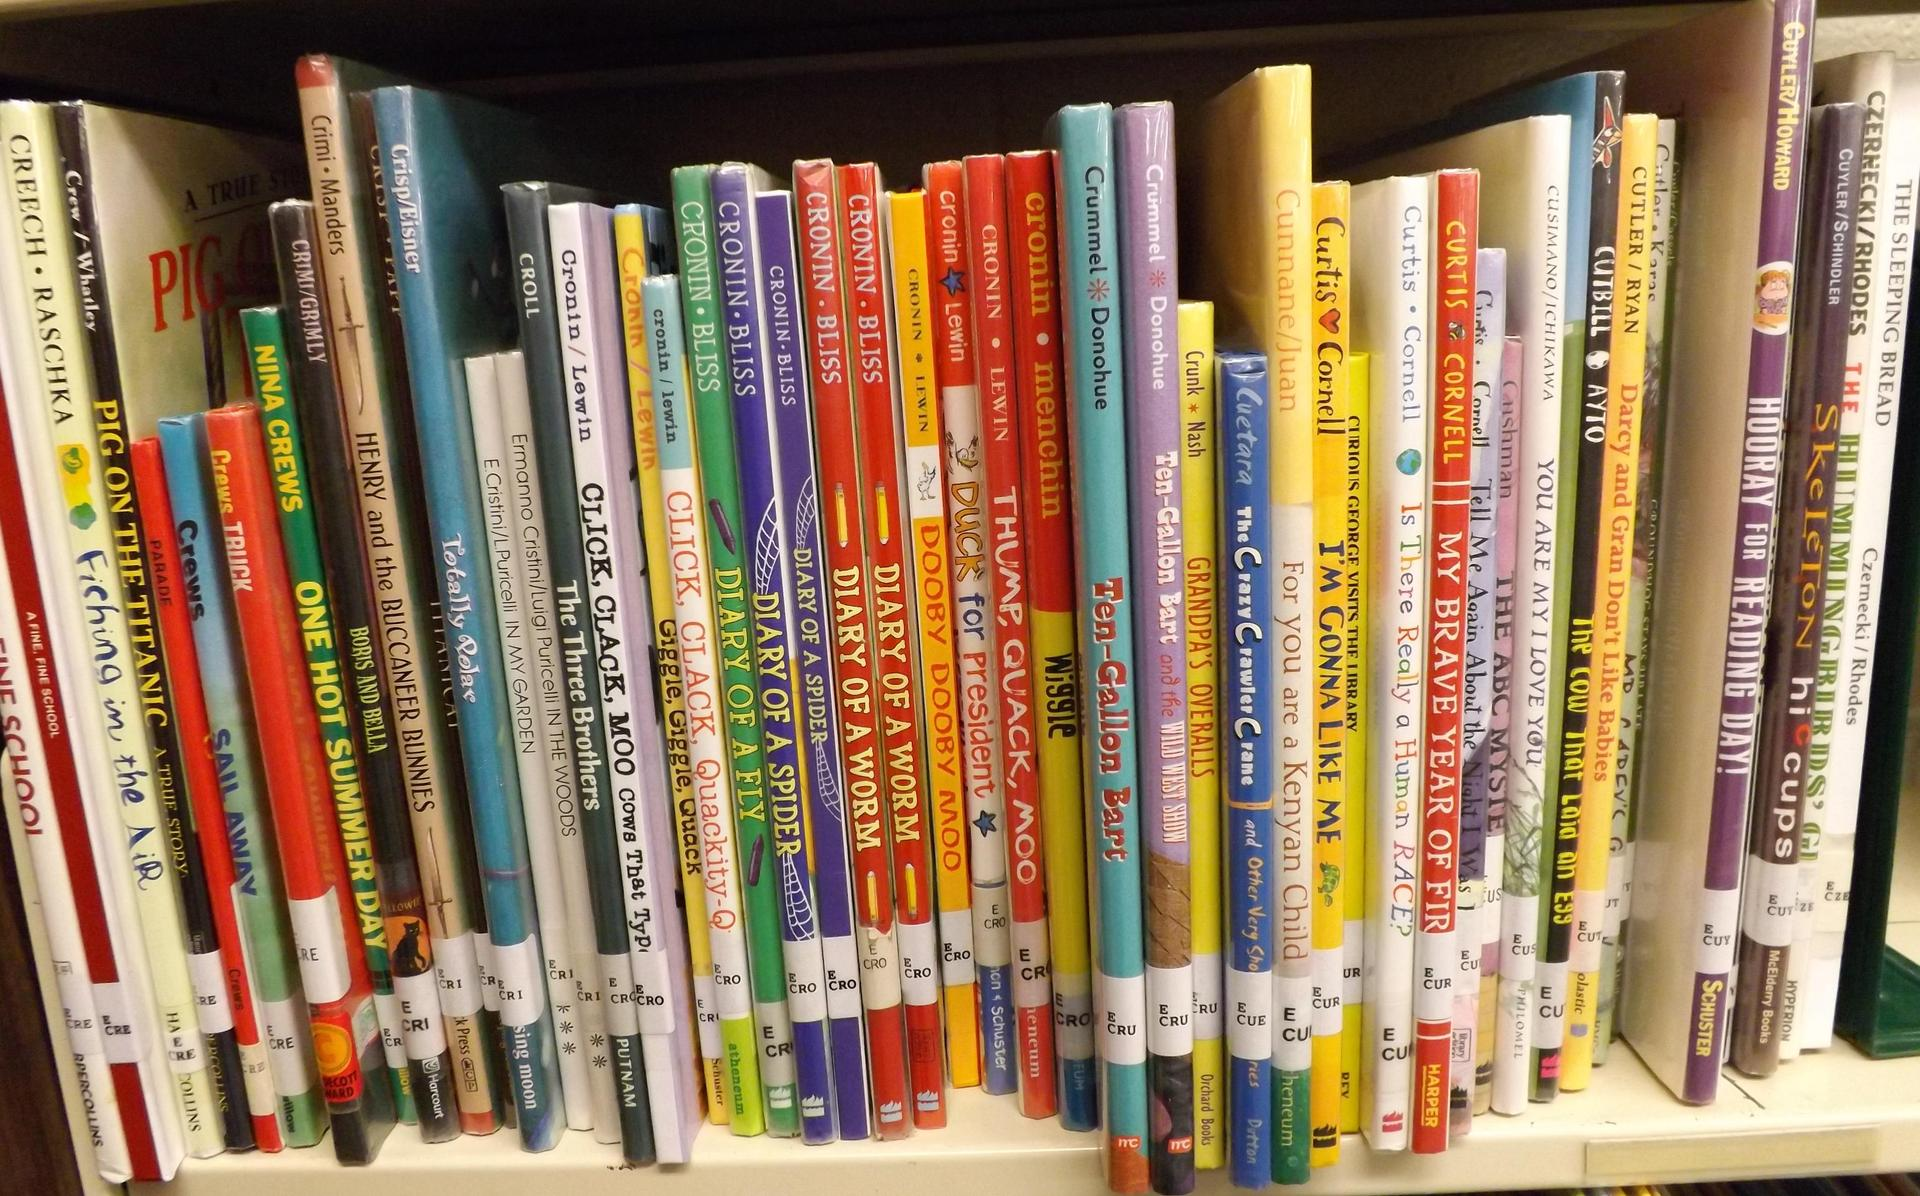 This is a shelf of books in the library.